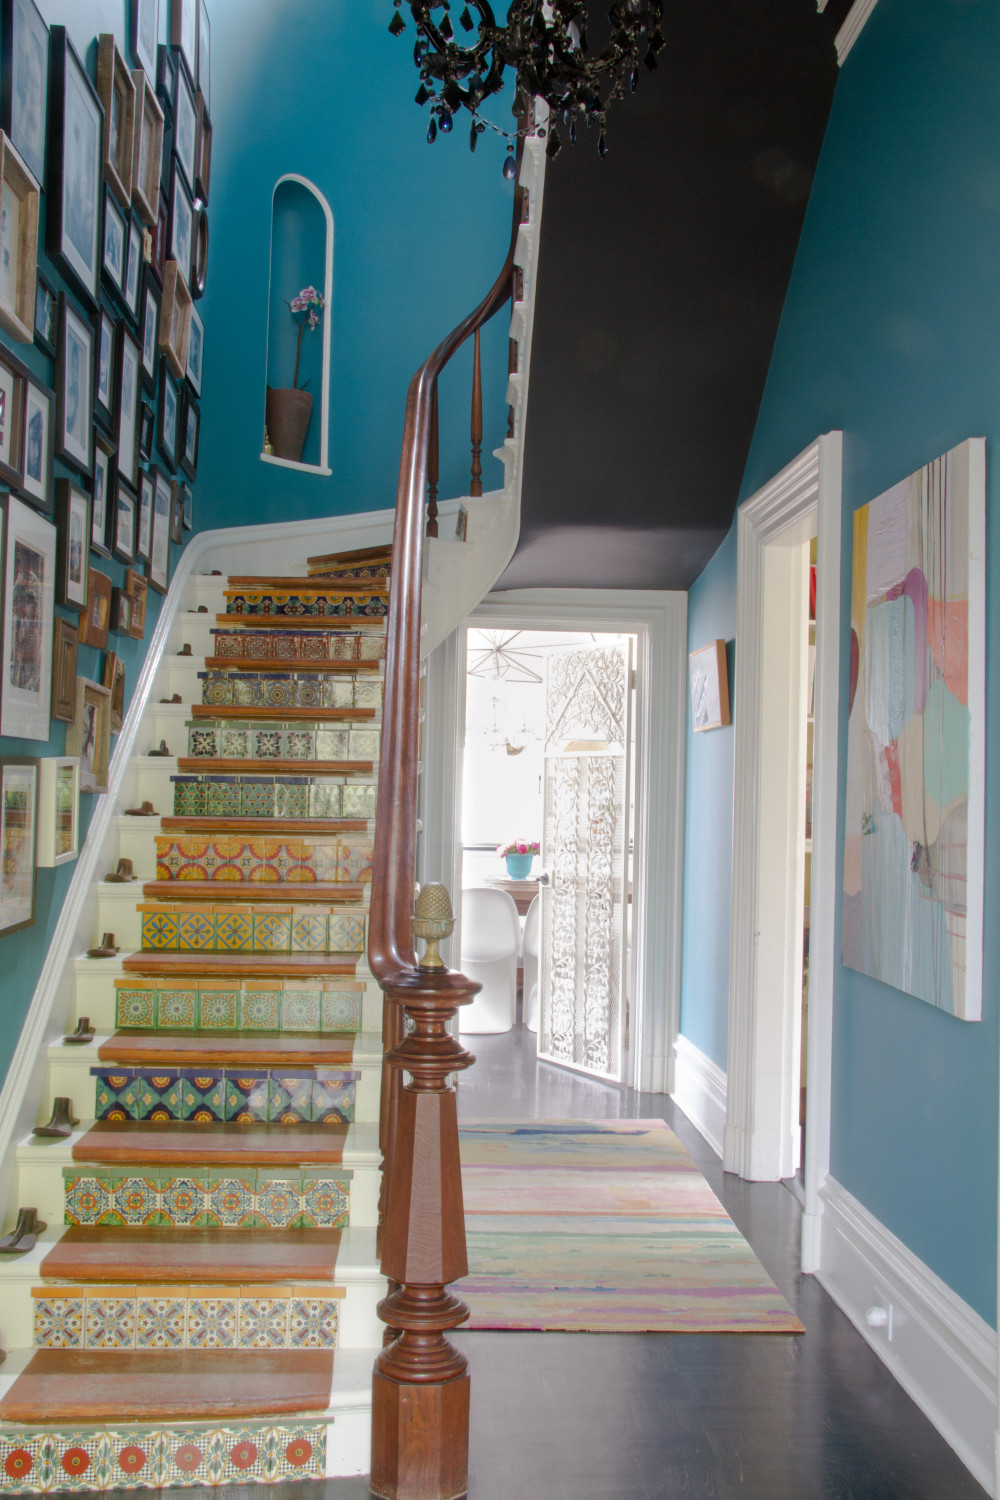 12 Unique Staircases that Make a Statement - Design*Sponge on Creative Staircase Wall Decorating Ideas  id=24461